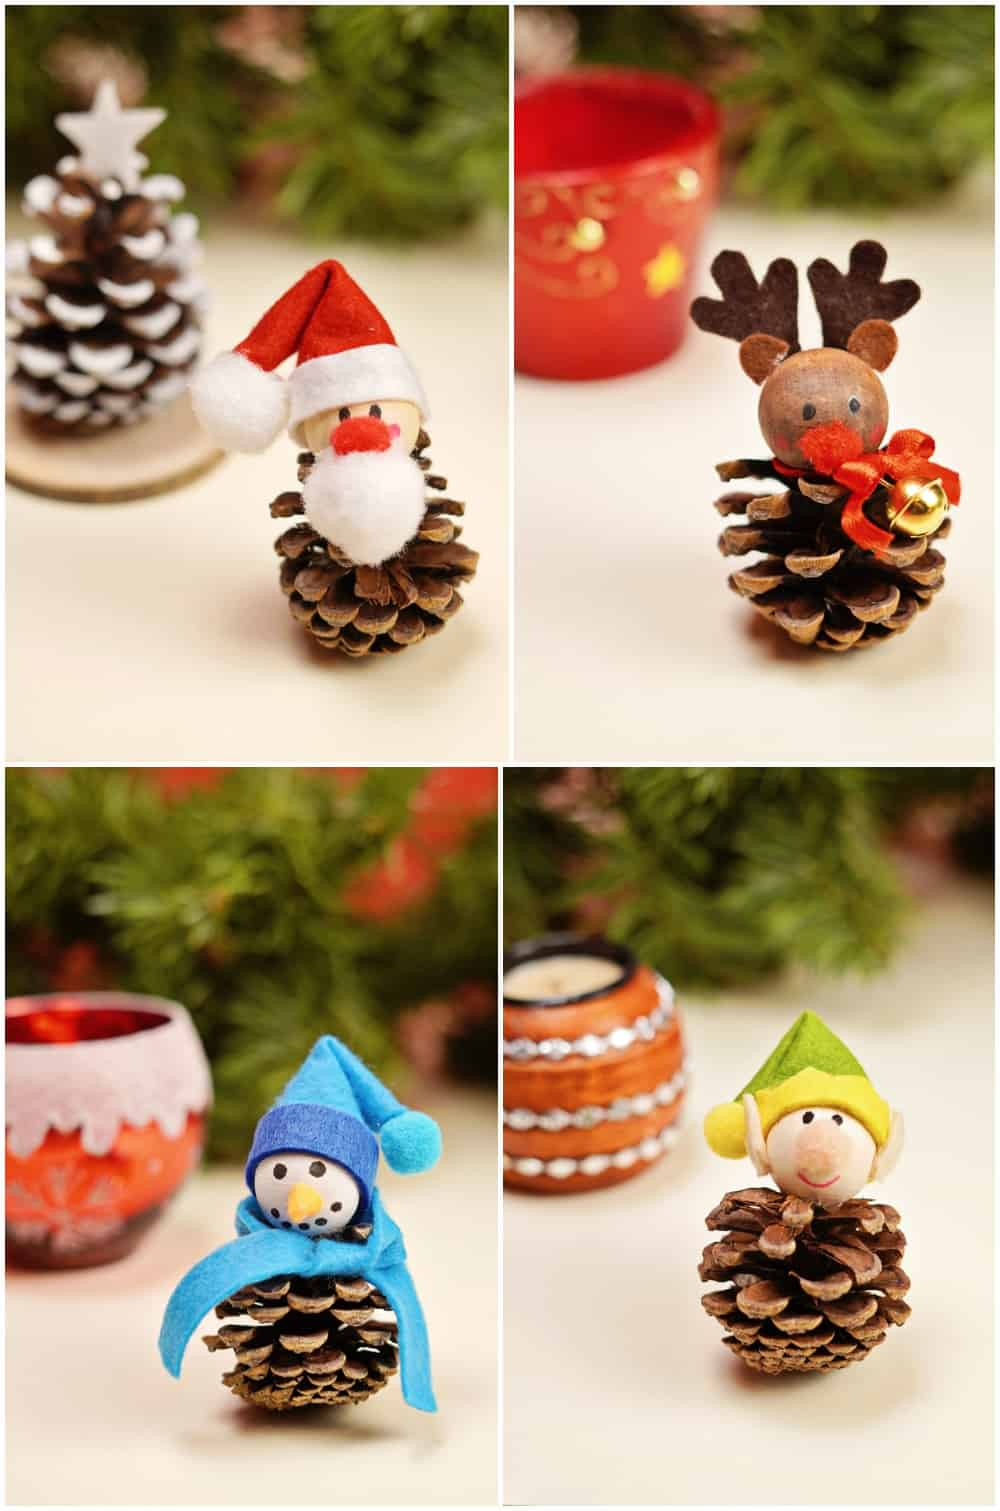 four pinecone crafts that are DIY for kids